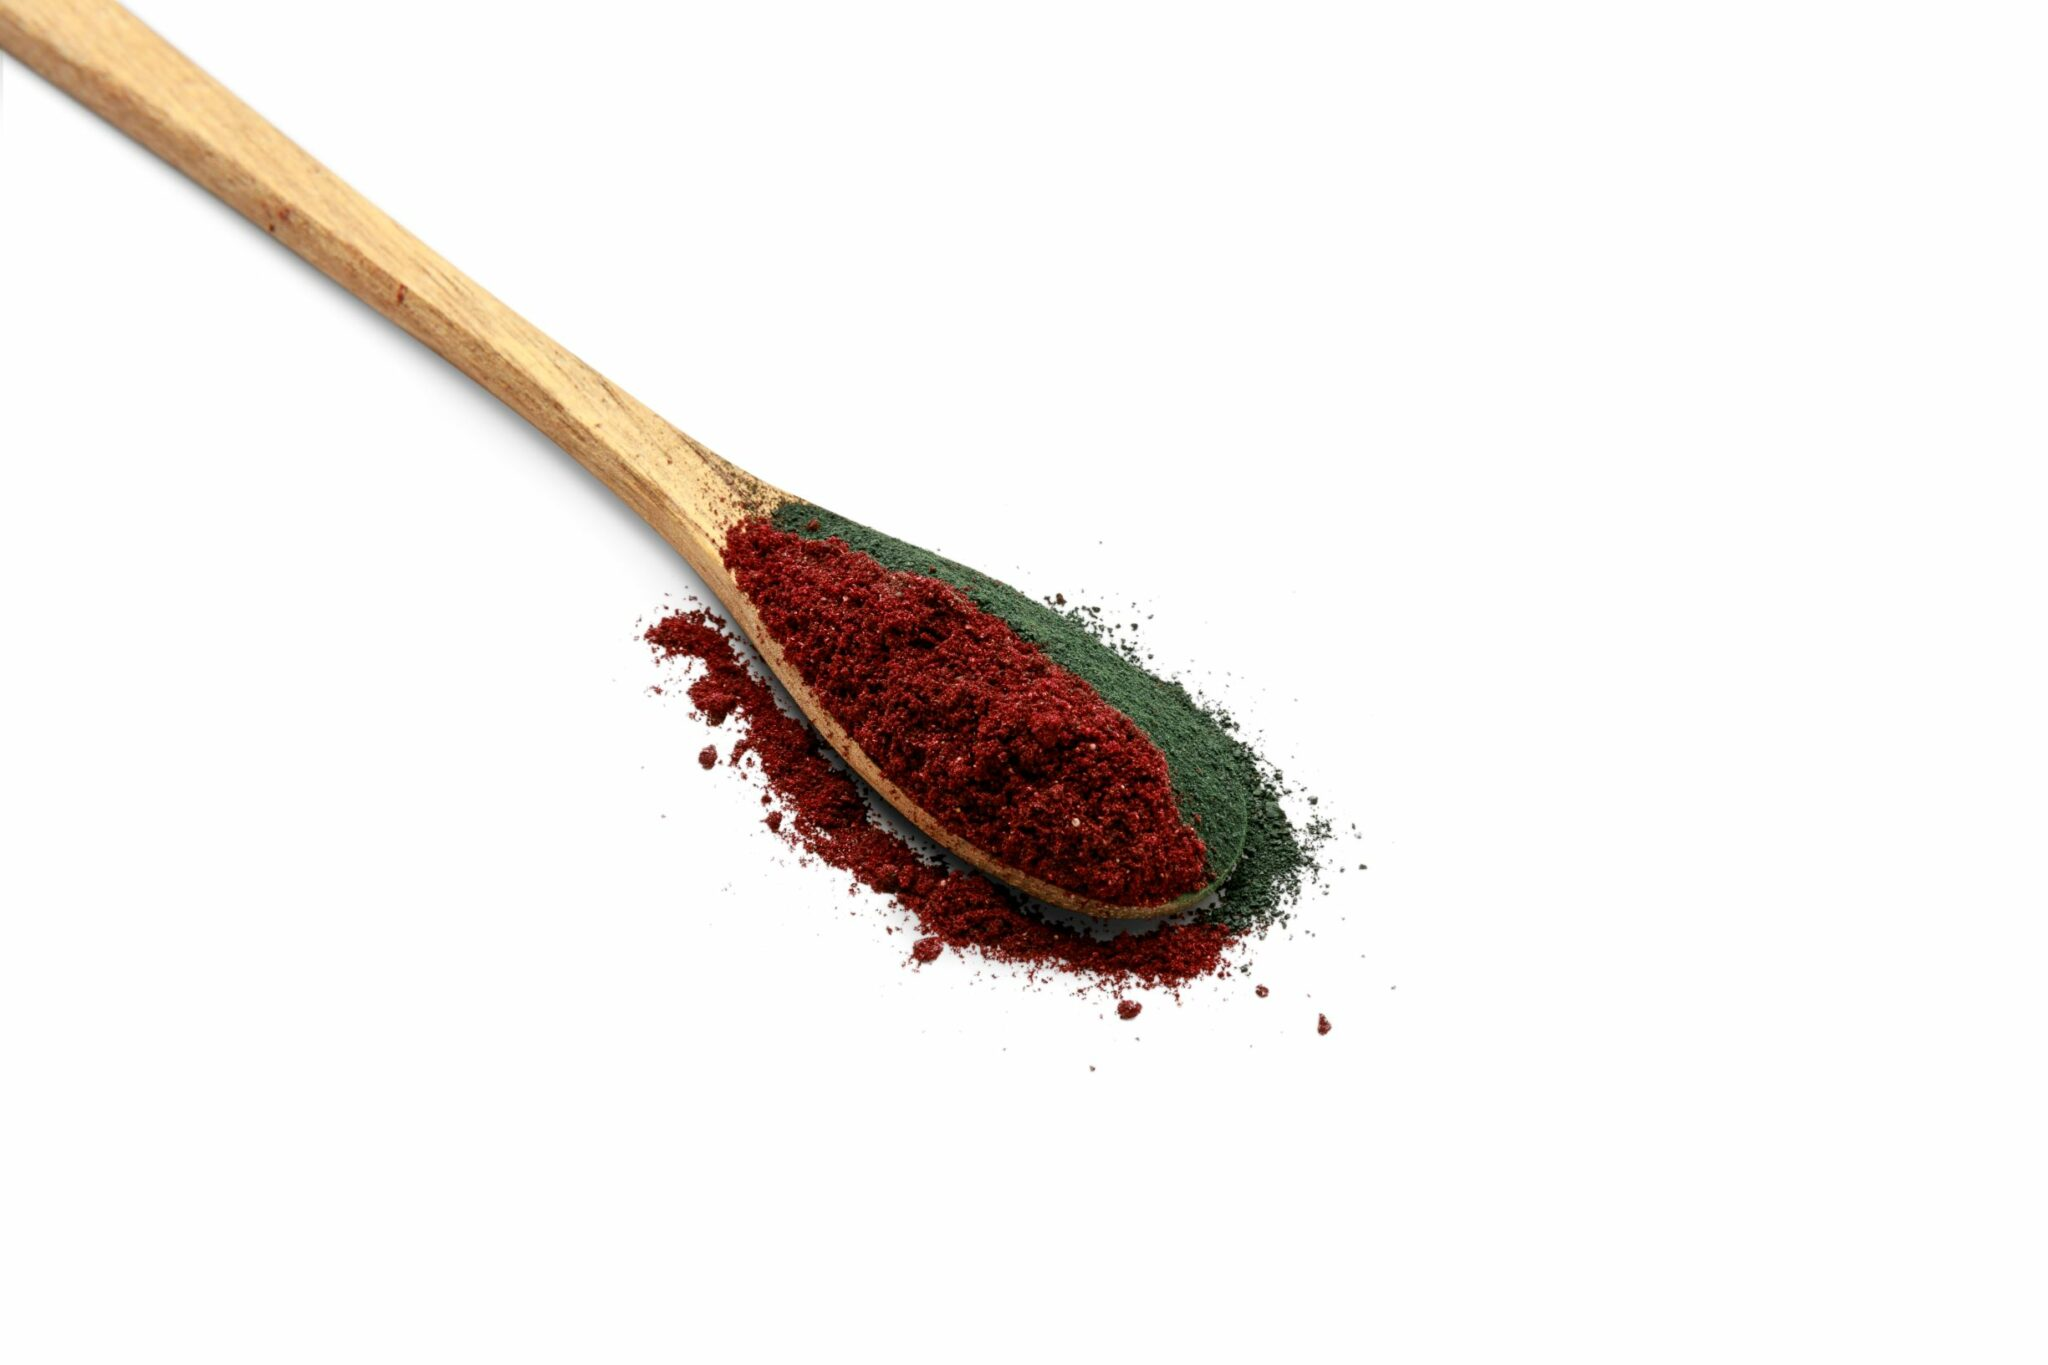 Spirulina and blackcurrant powder on wooden spoon